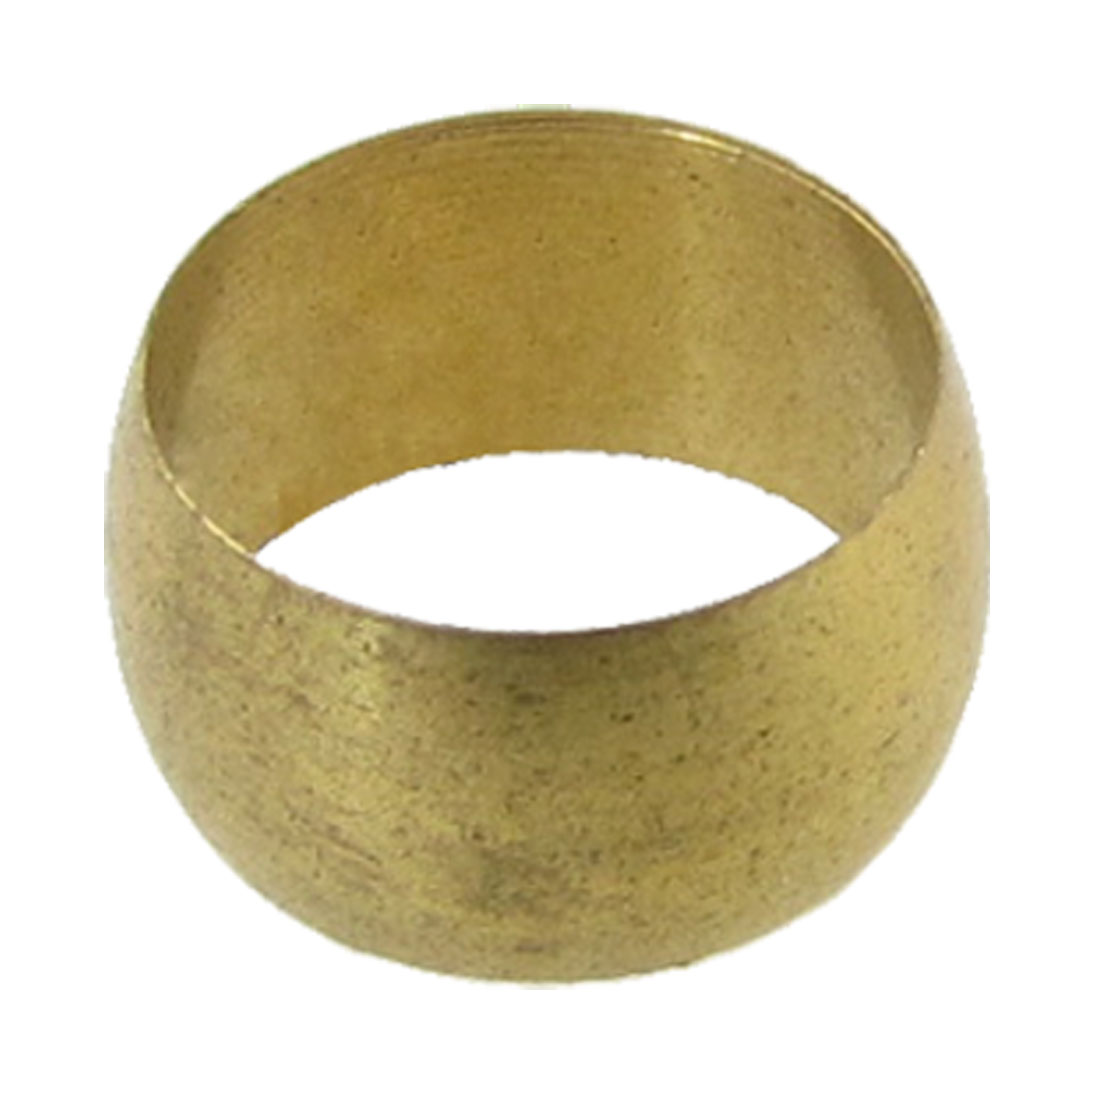 Gold-Tone-10mm-Diameter-Brass-Compression-Sleeve-Fitting